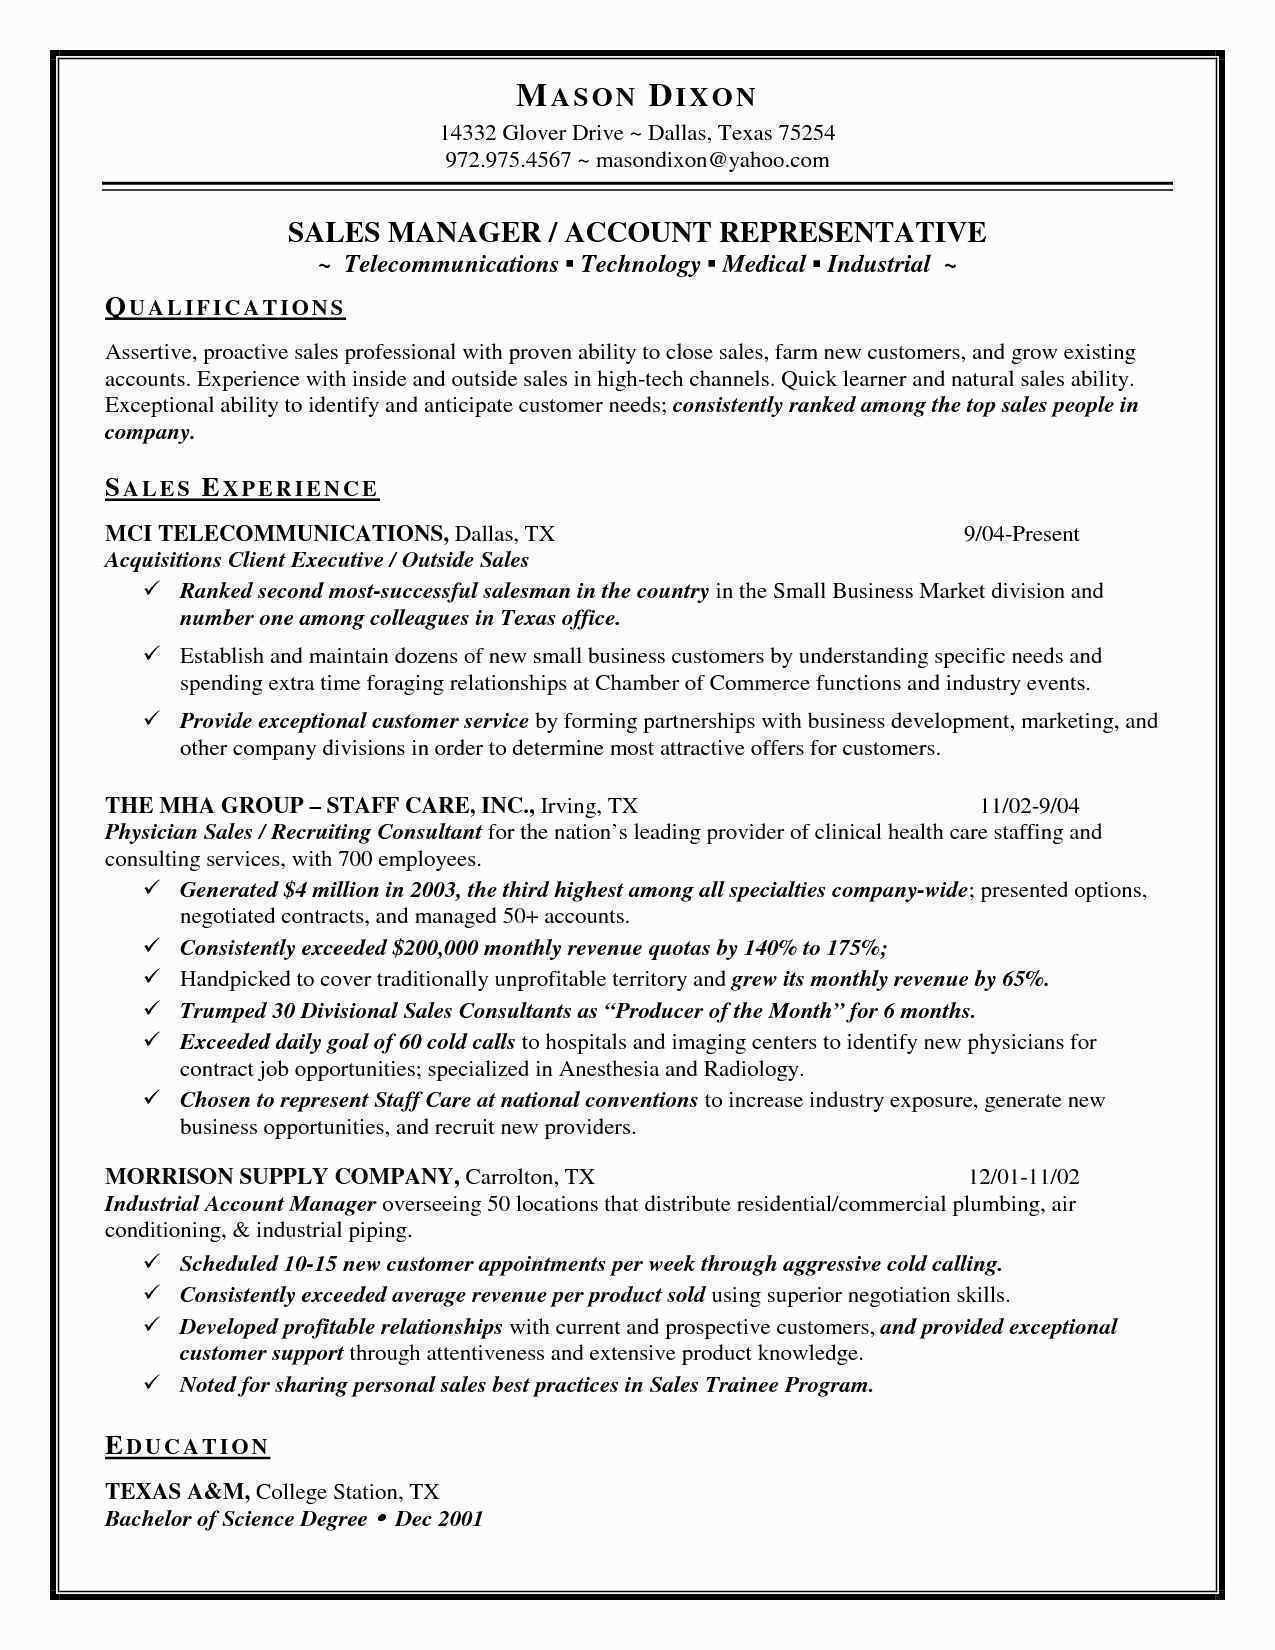 Outside Sales Rep Resume - Resume Samples for Sales Representative New Sales Resume Sample New